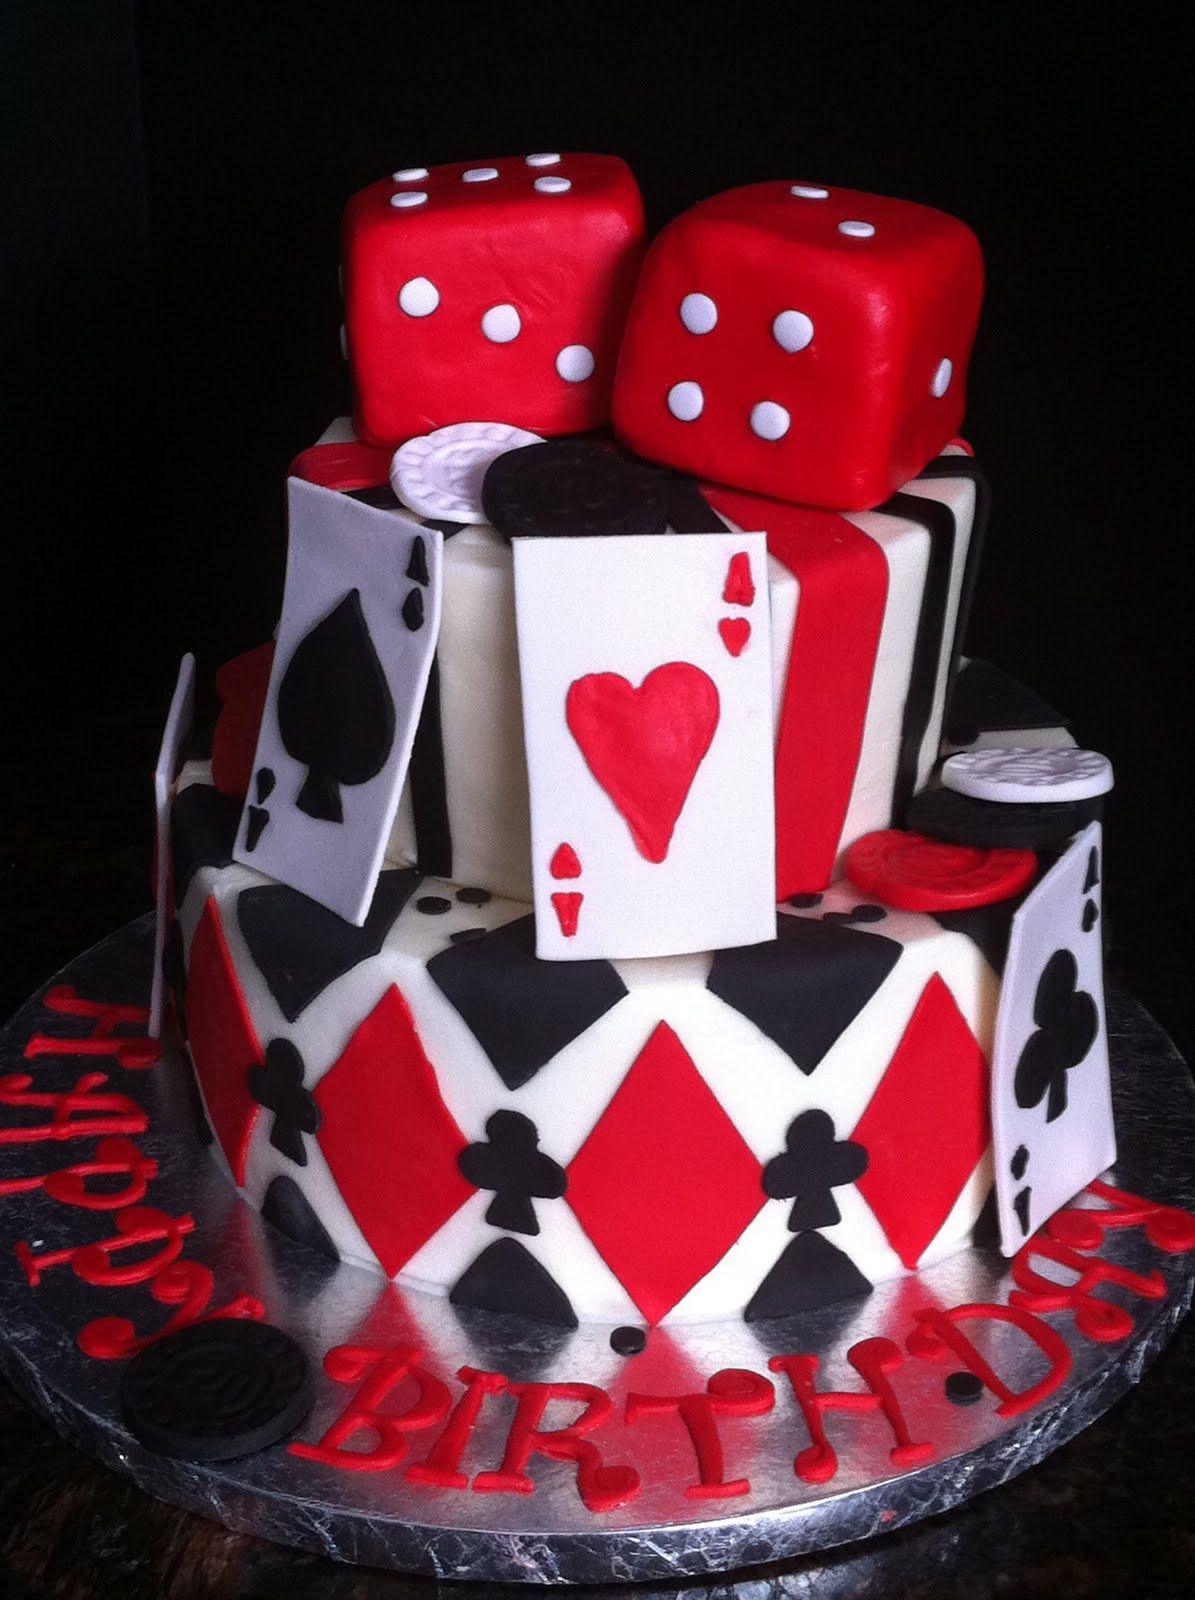 Cards Dice Wedding Cake Casino Cakes Themed Birthday